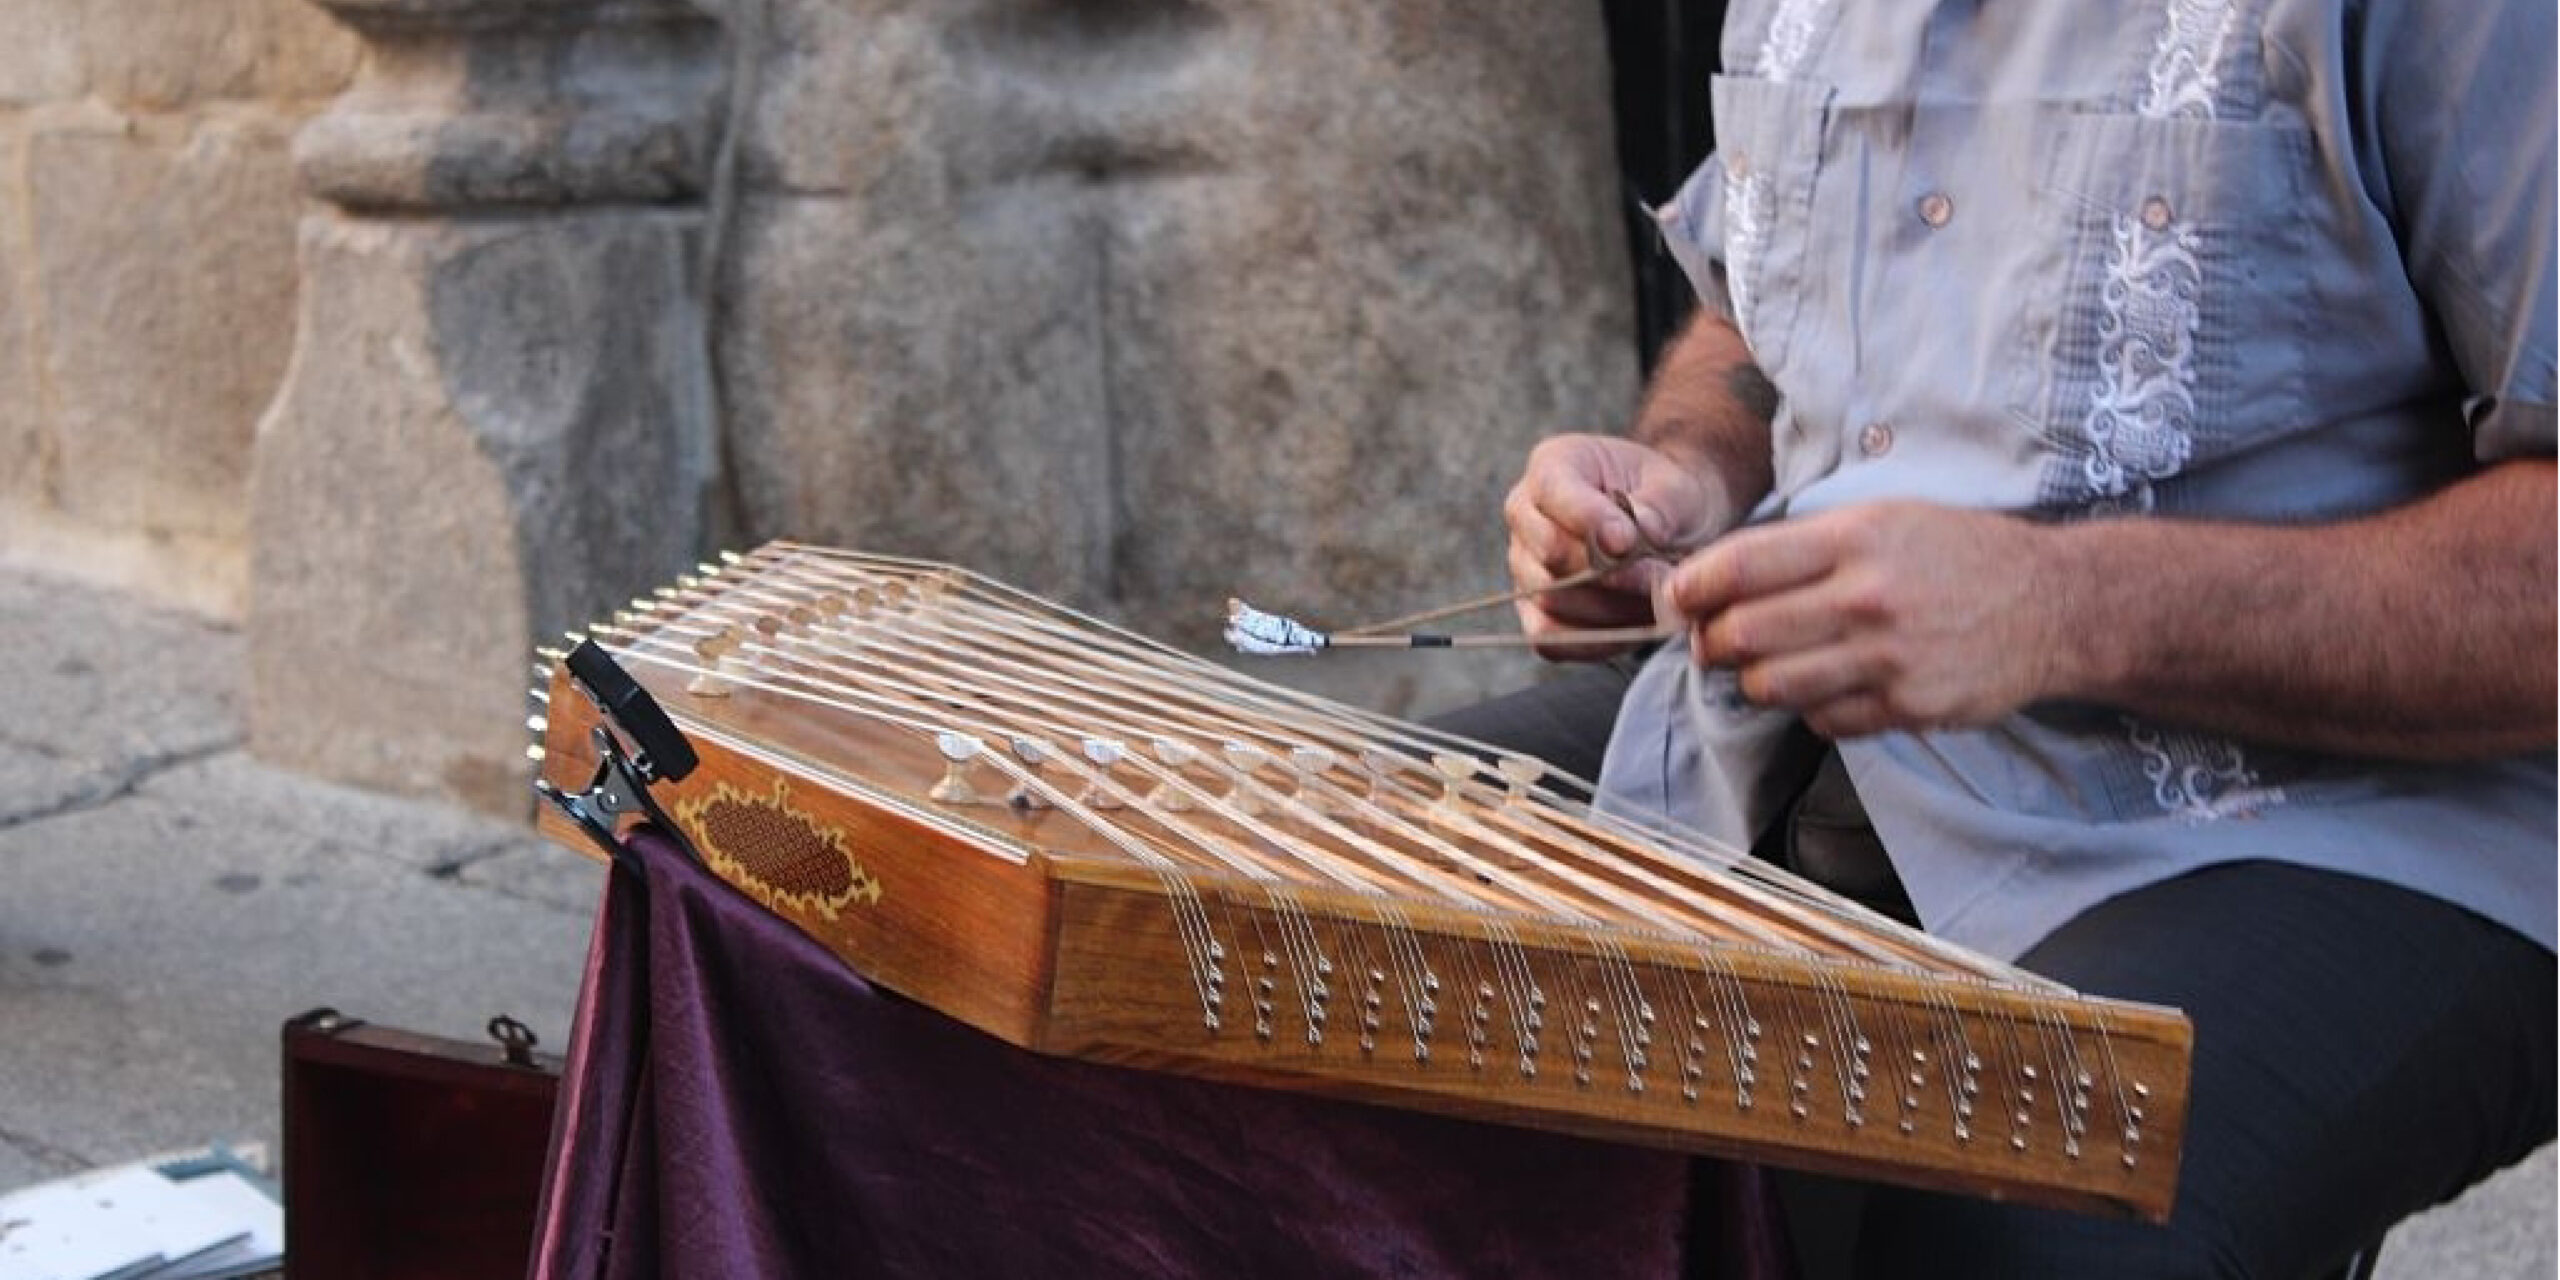 how to tune a hammered dulcimer?